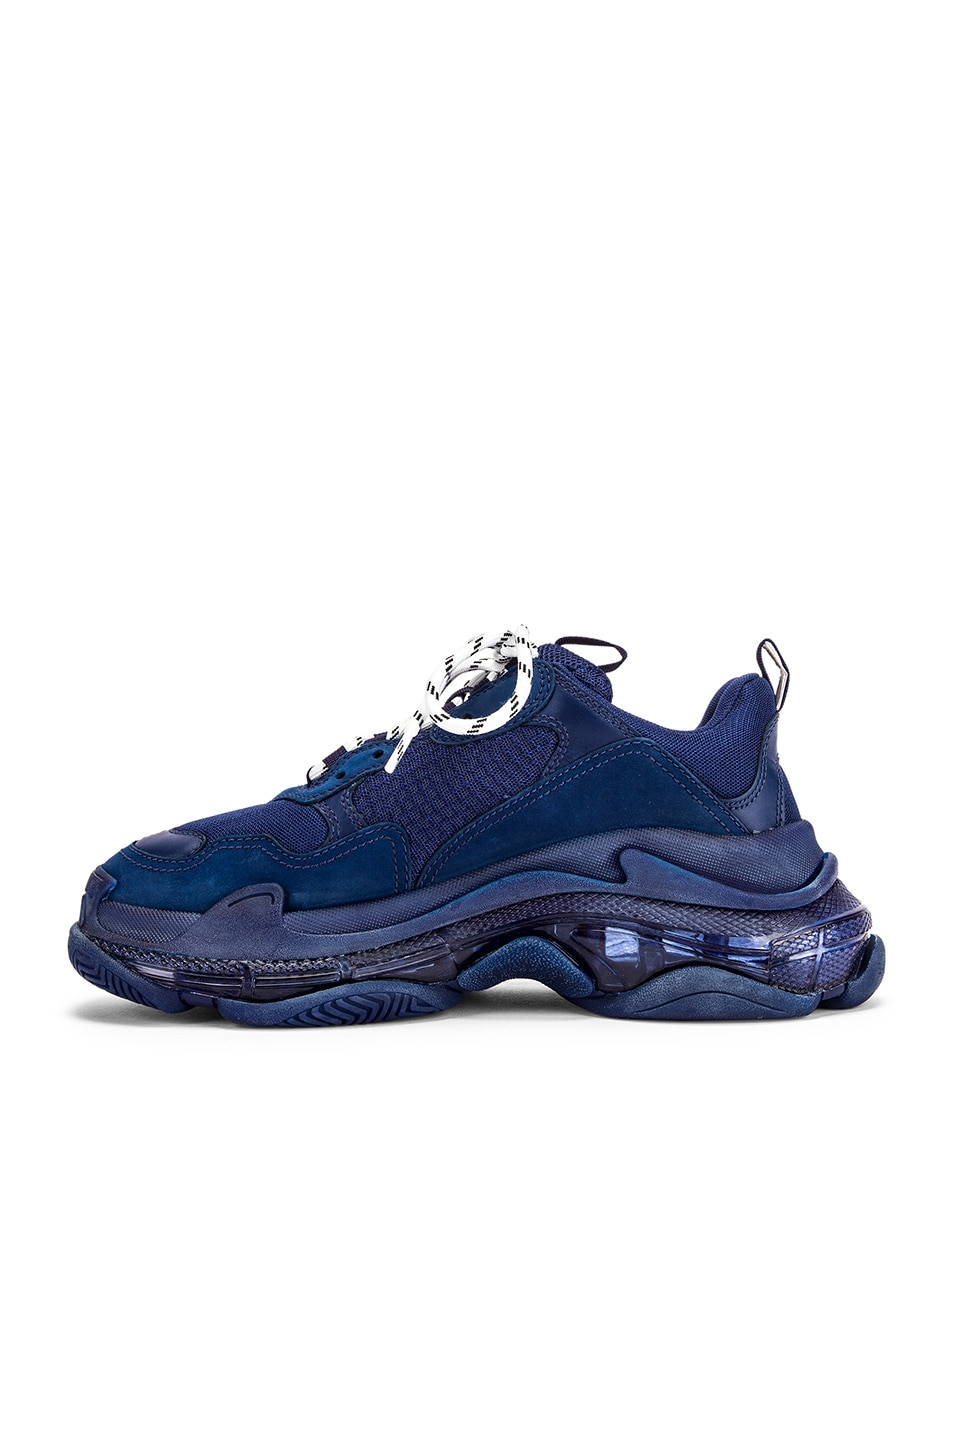 Image 5 of Balenciaga Triple S Sneakers in Navy